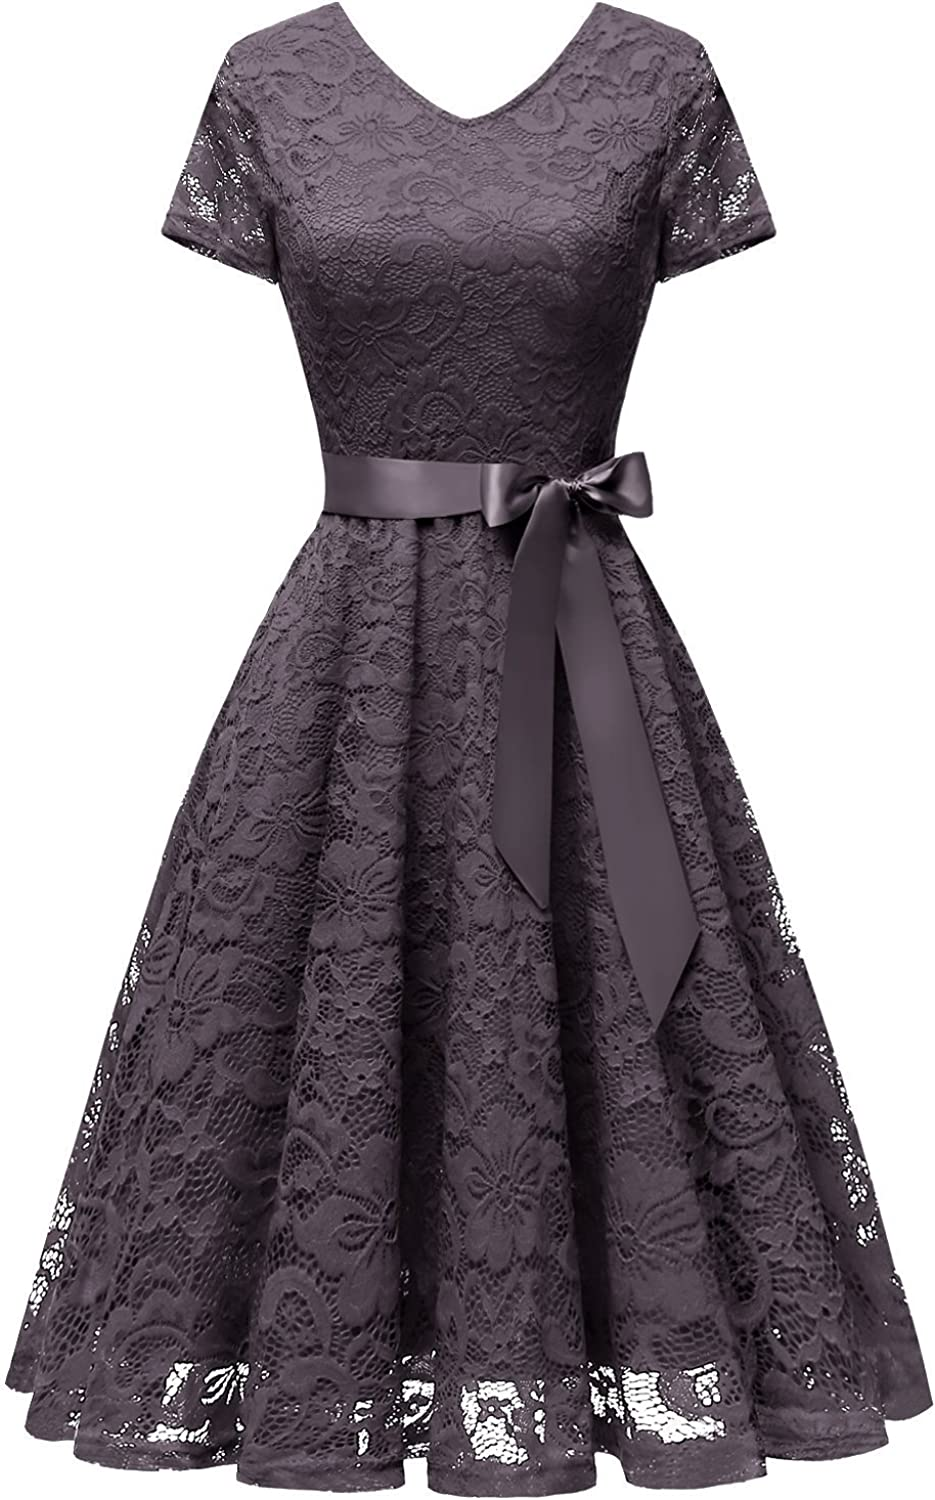 Bridesmay Women's Bridesmaid Dresses Floral Lace Cocktail Dress with Short Sleeve